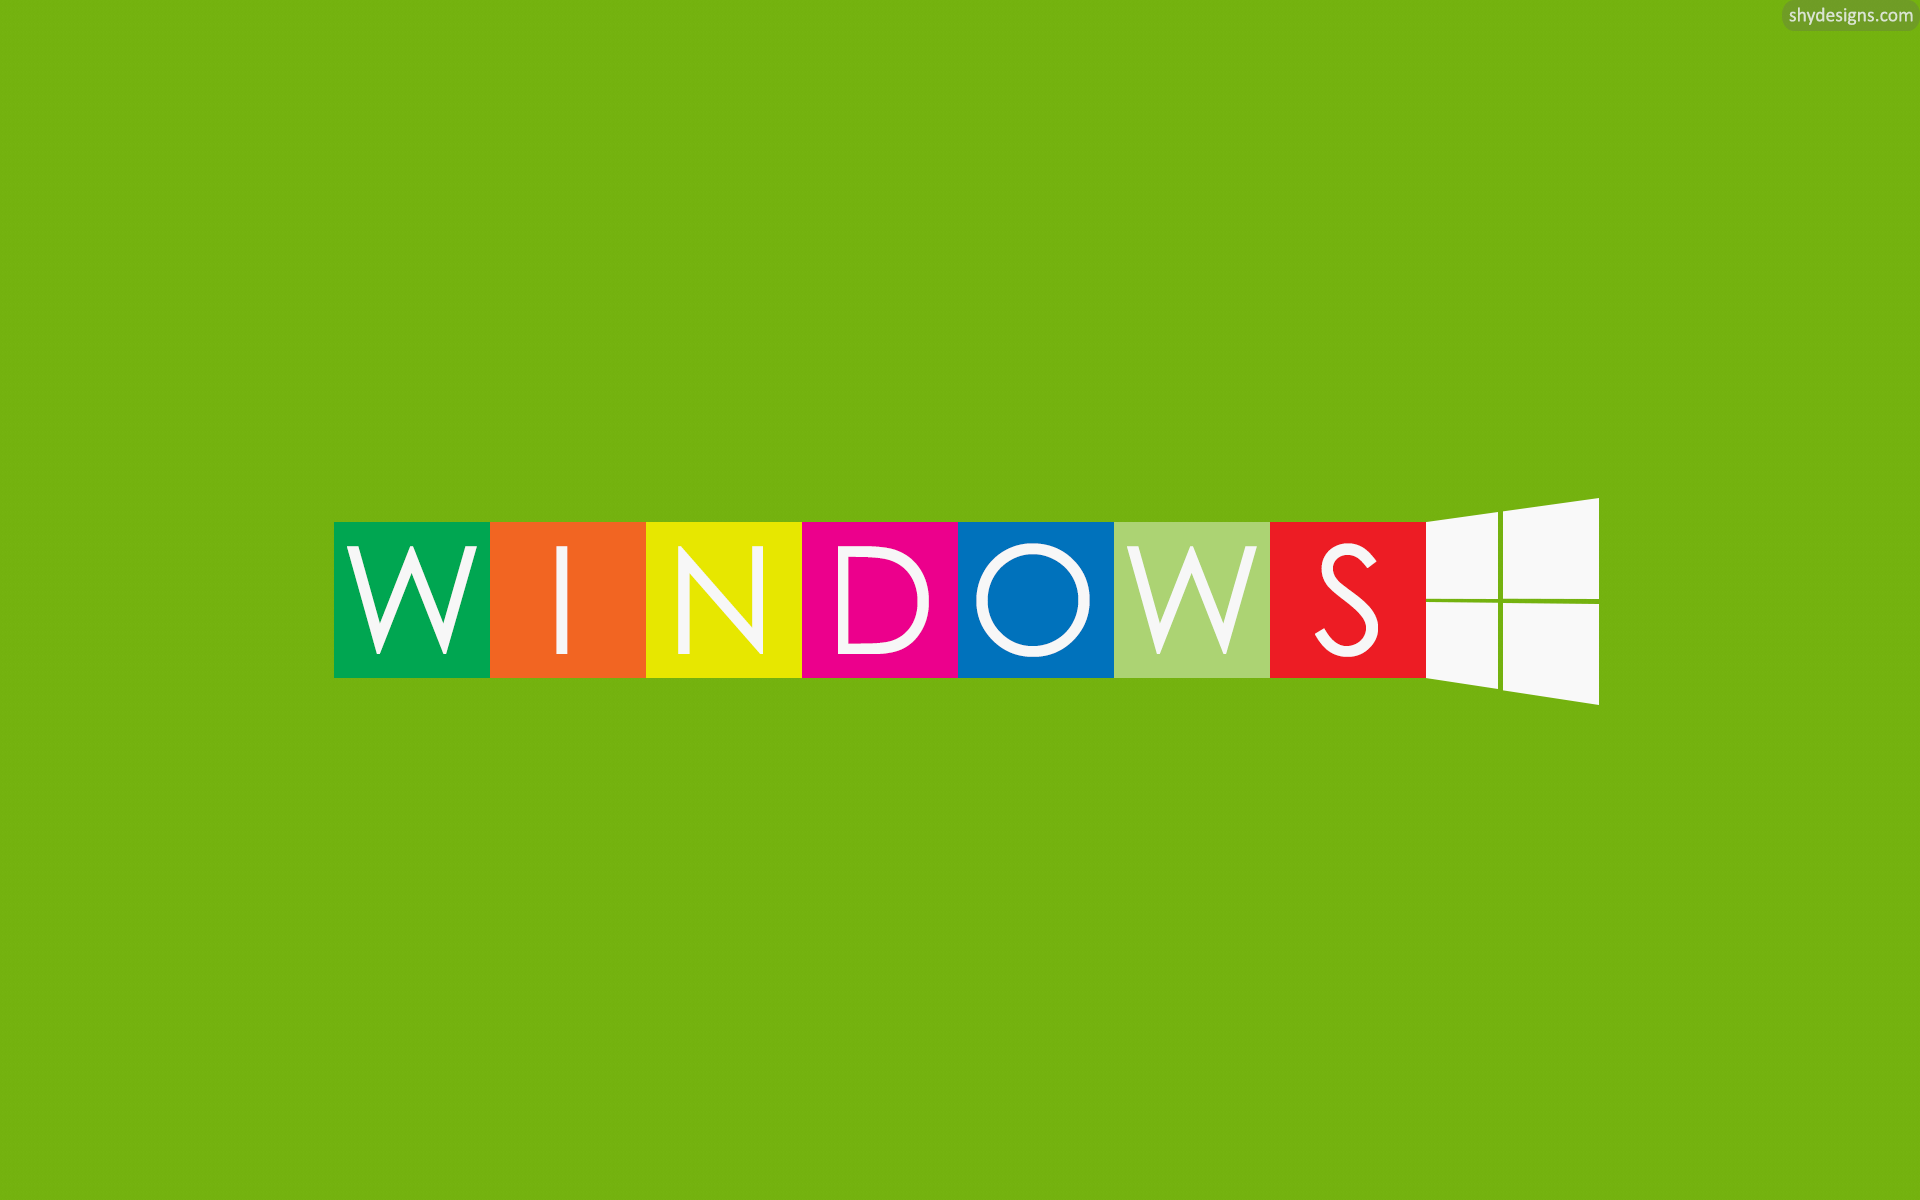 Windows-8-Wallpapers-Windows-8.1-Wallpapers-backgrounds-10 (1)